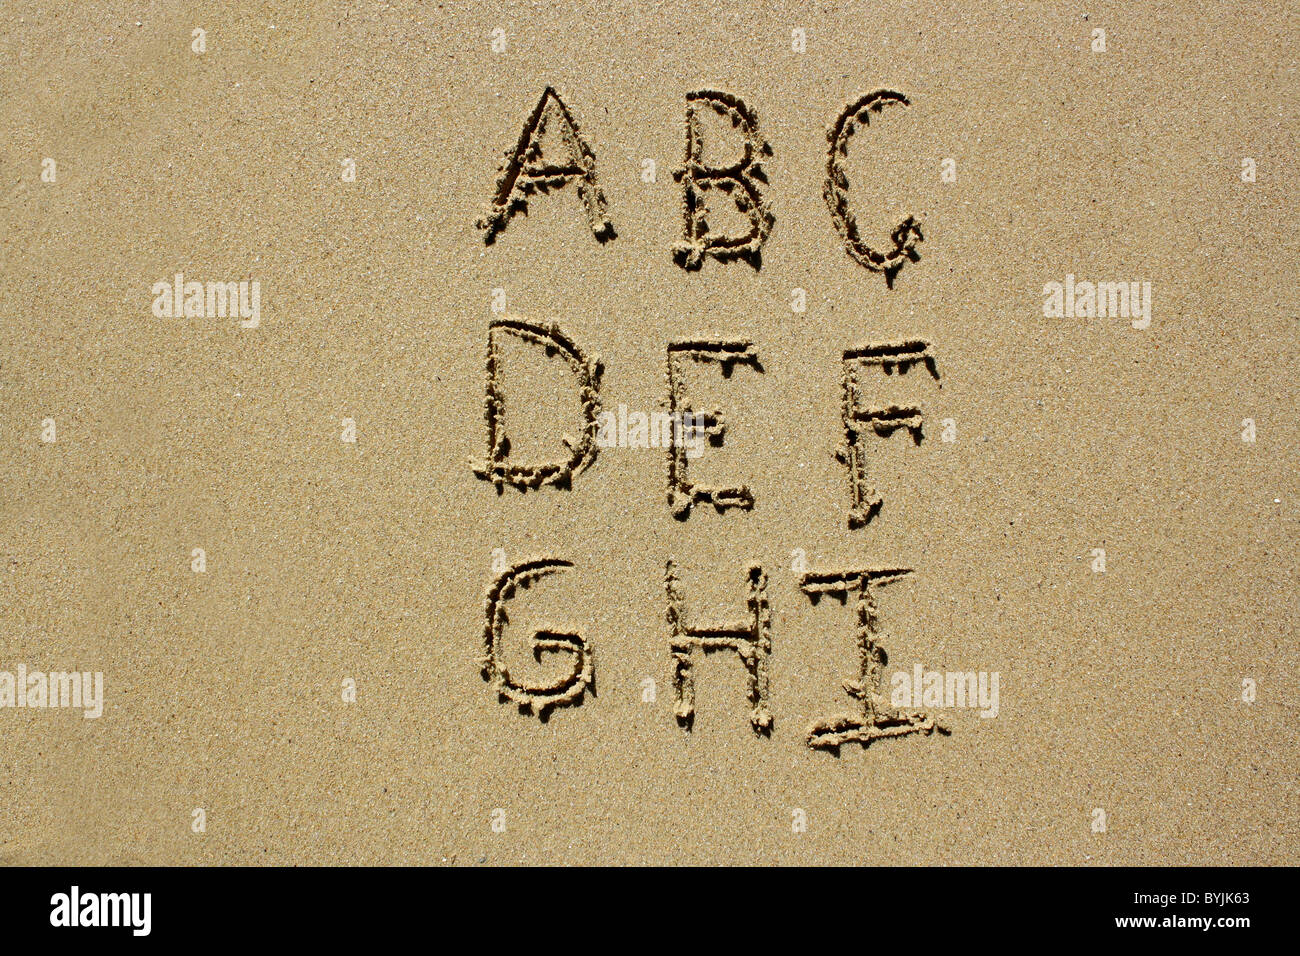 The letters A-I written out in wet sand. Please see my collection for more similar photos. Stock Photo